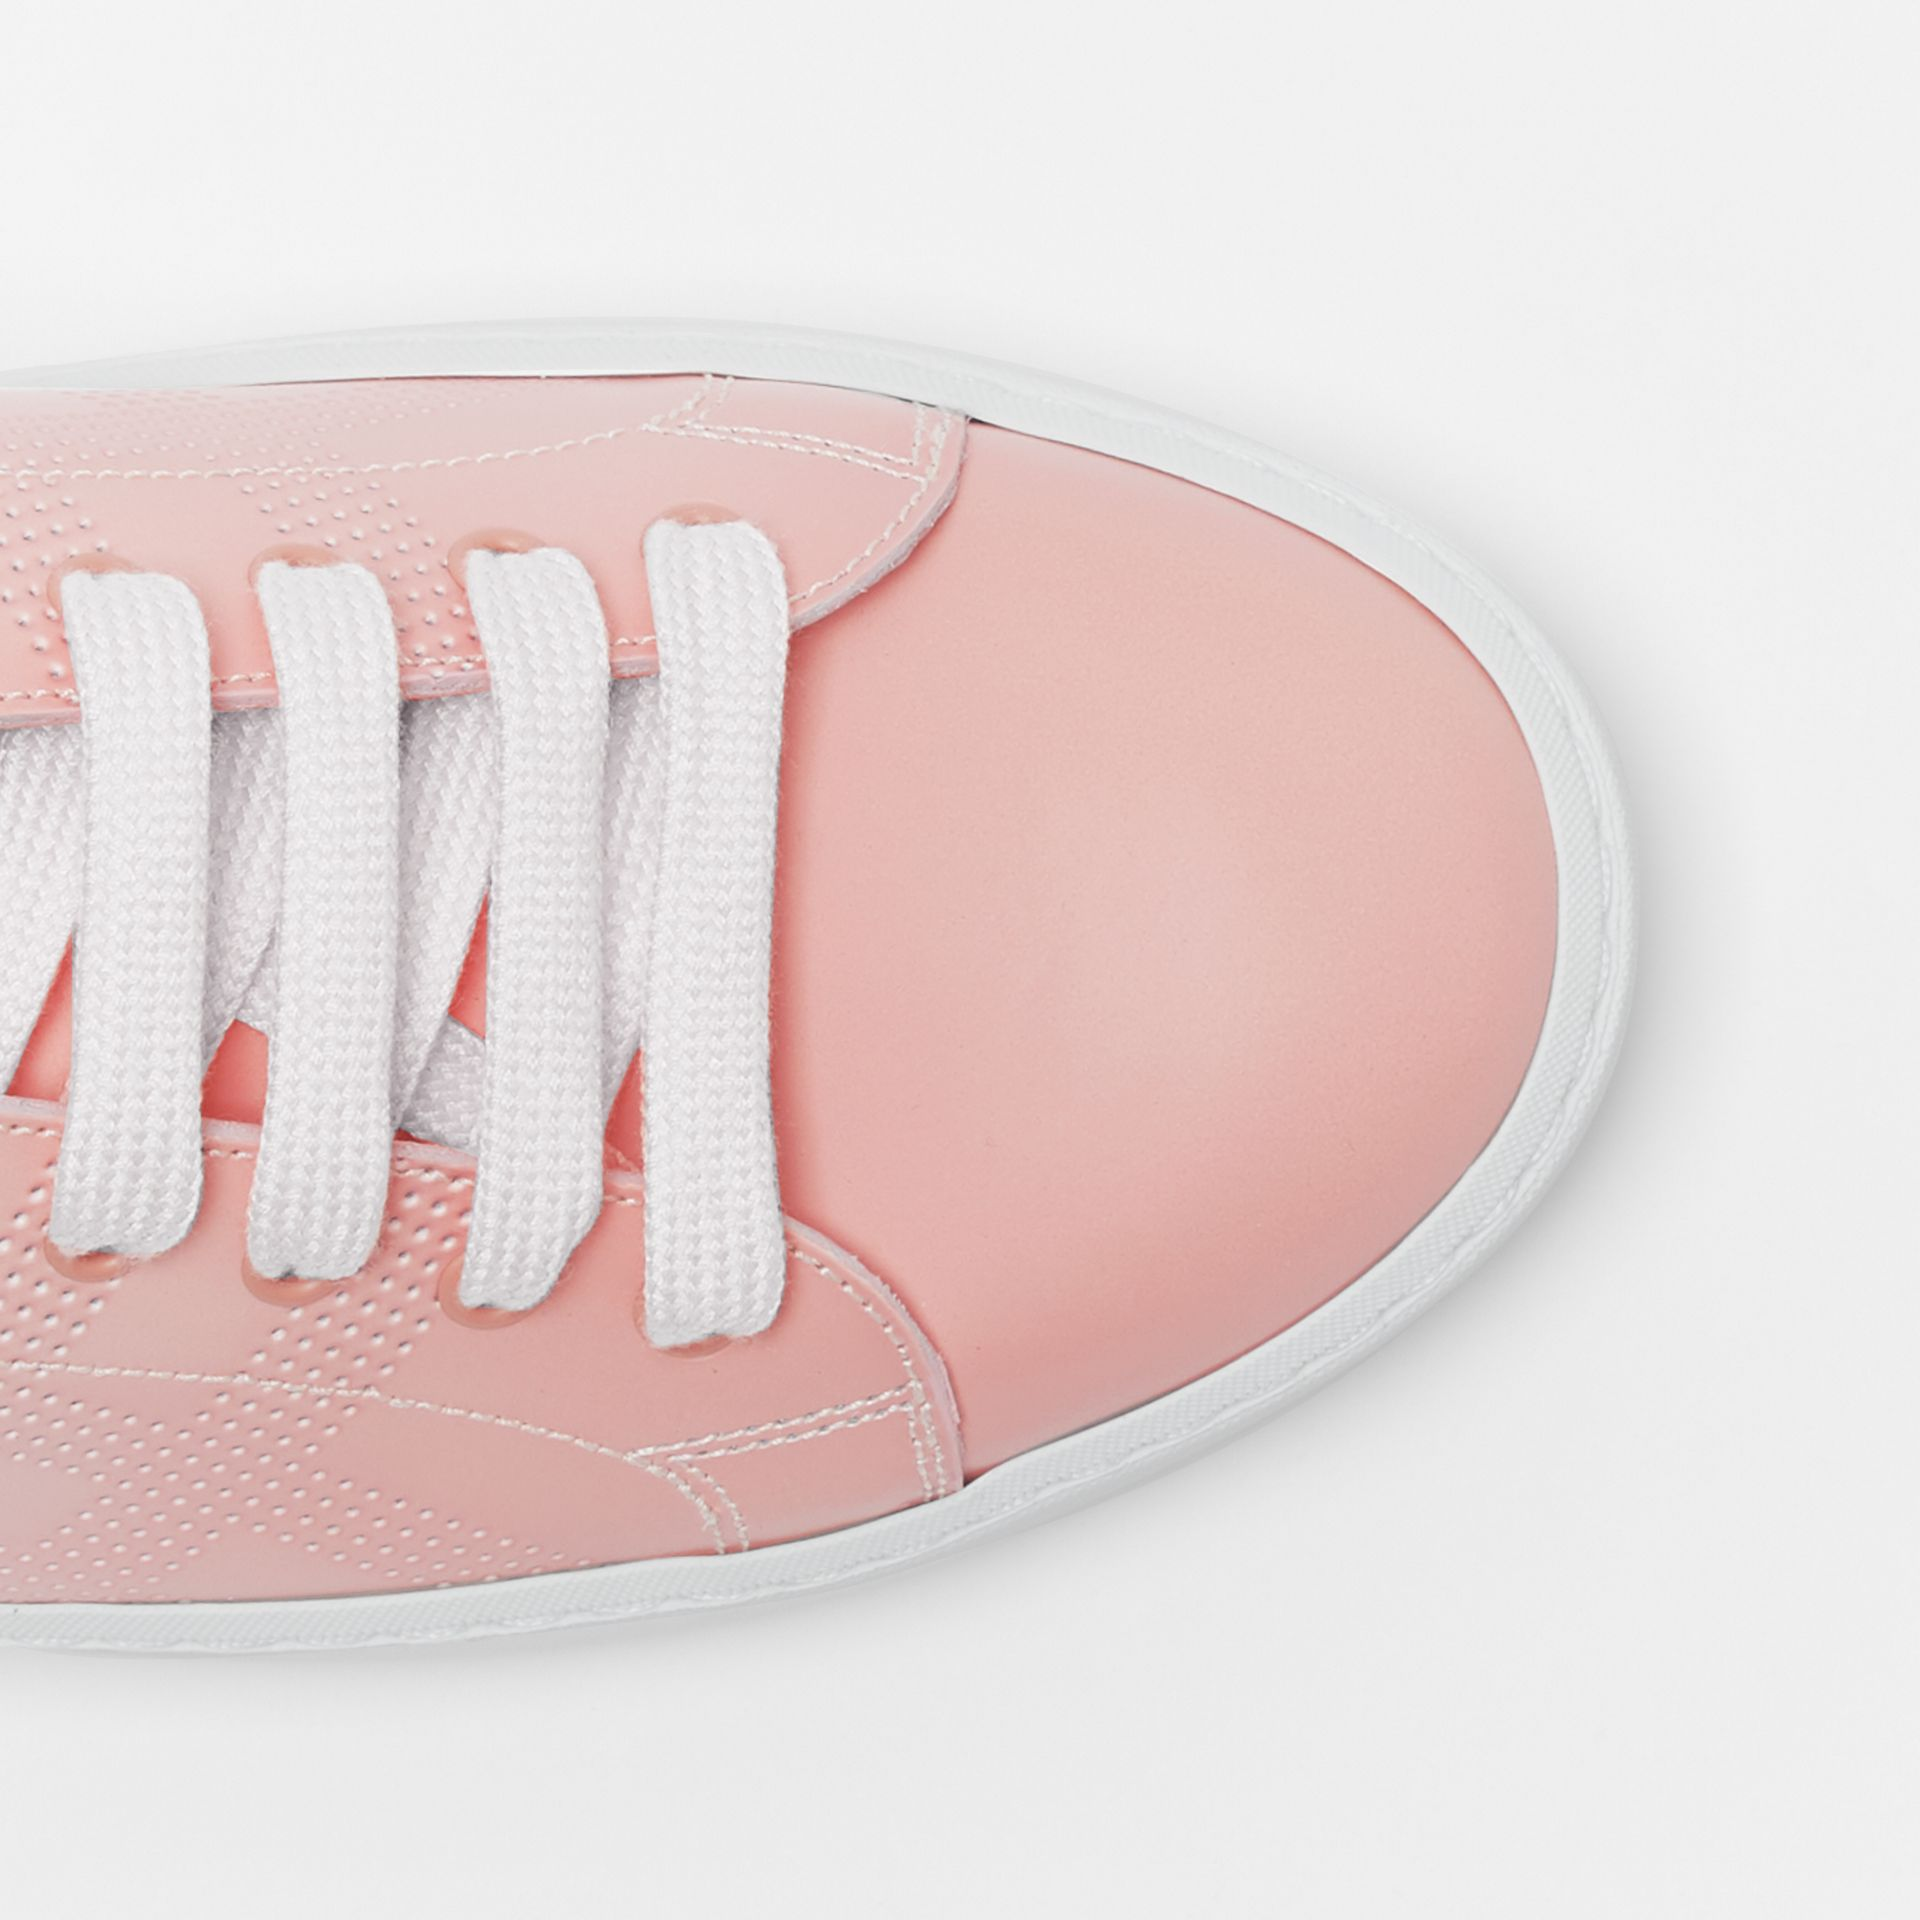 Perforated Check Dégradé Leather Sneakers in Sugar Pink - Women | Burberry Canada - gallery image 2